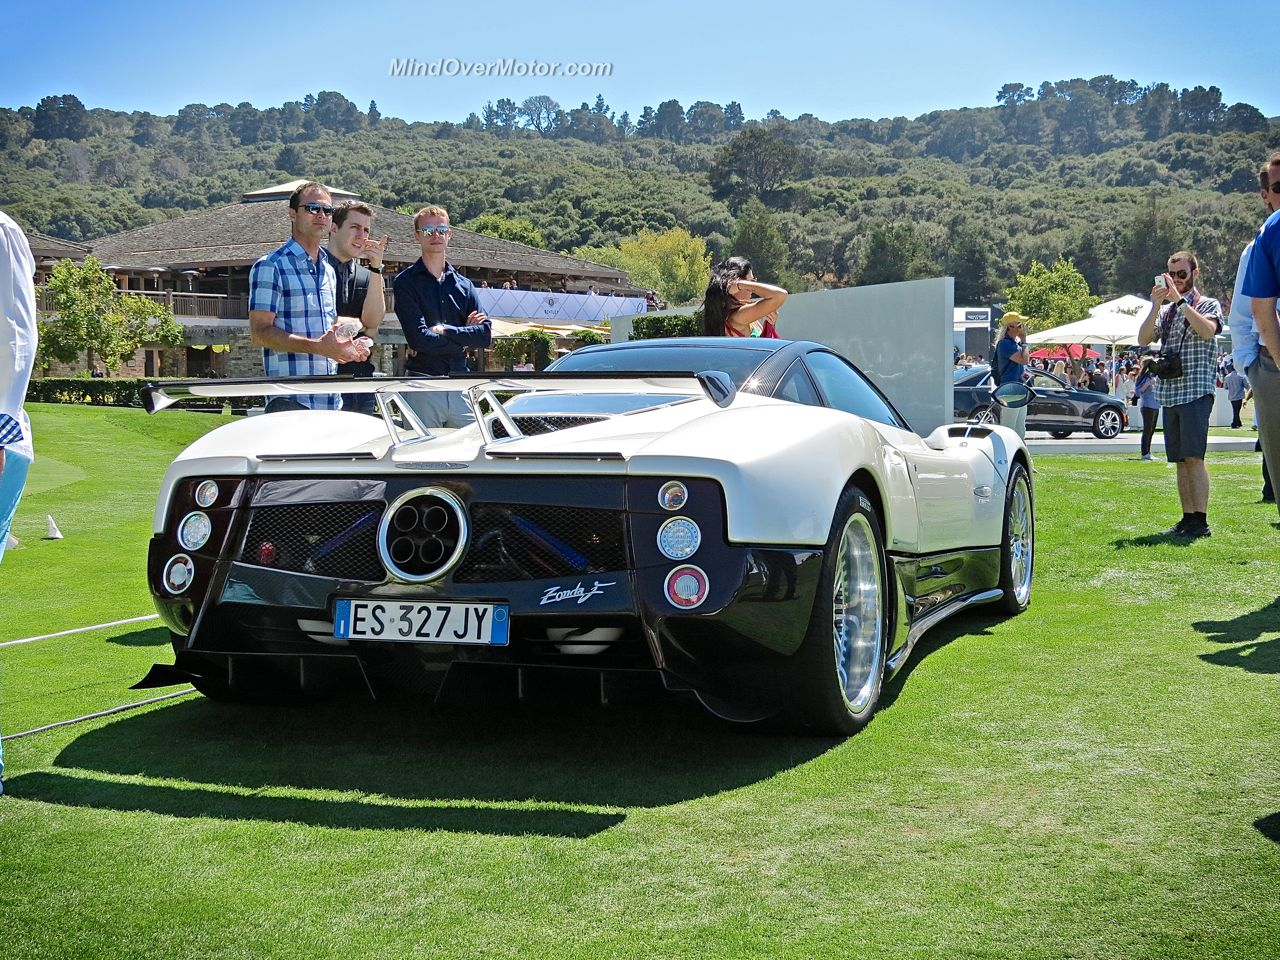 Pagani Zonda F Rear End at Monterey Car Week